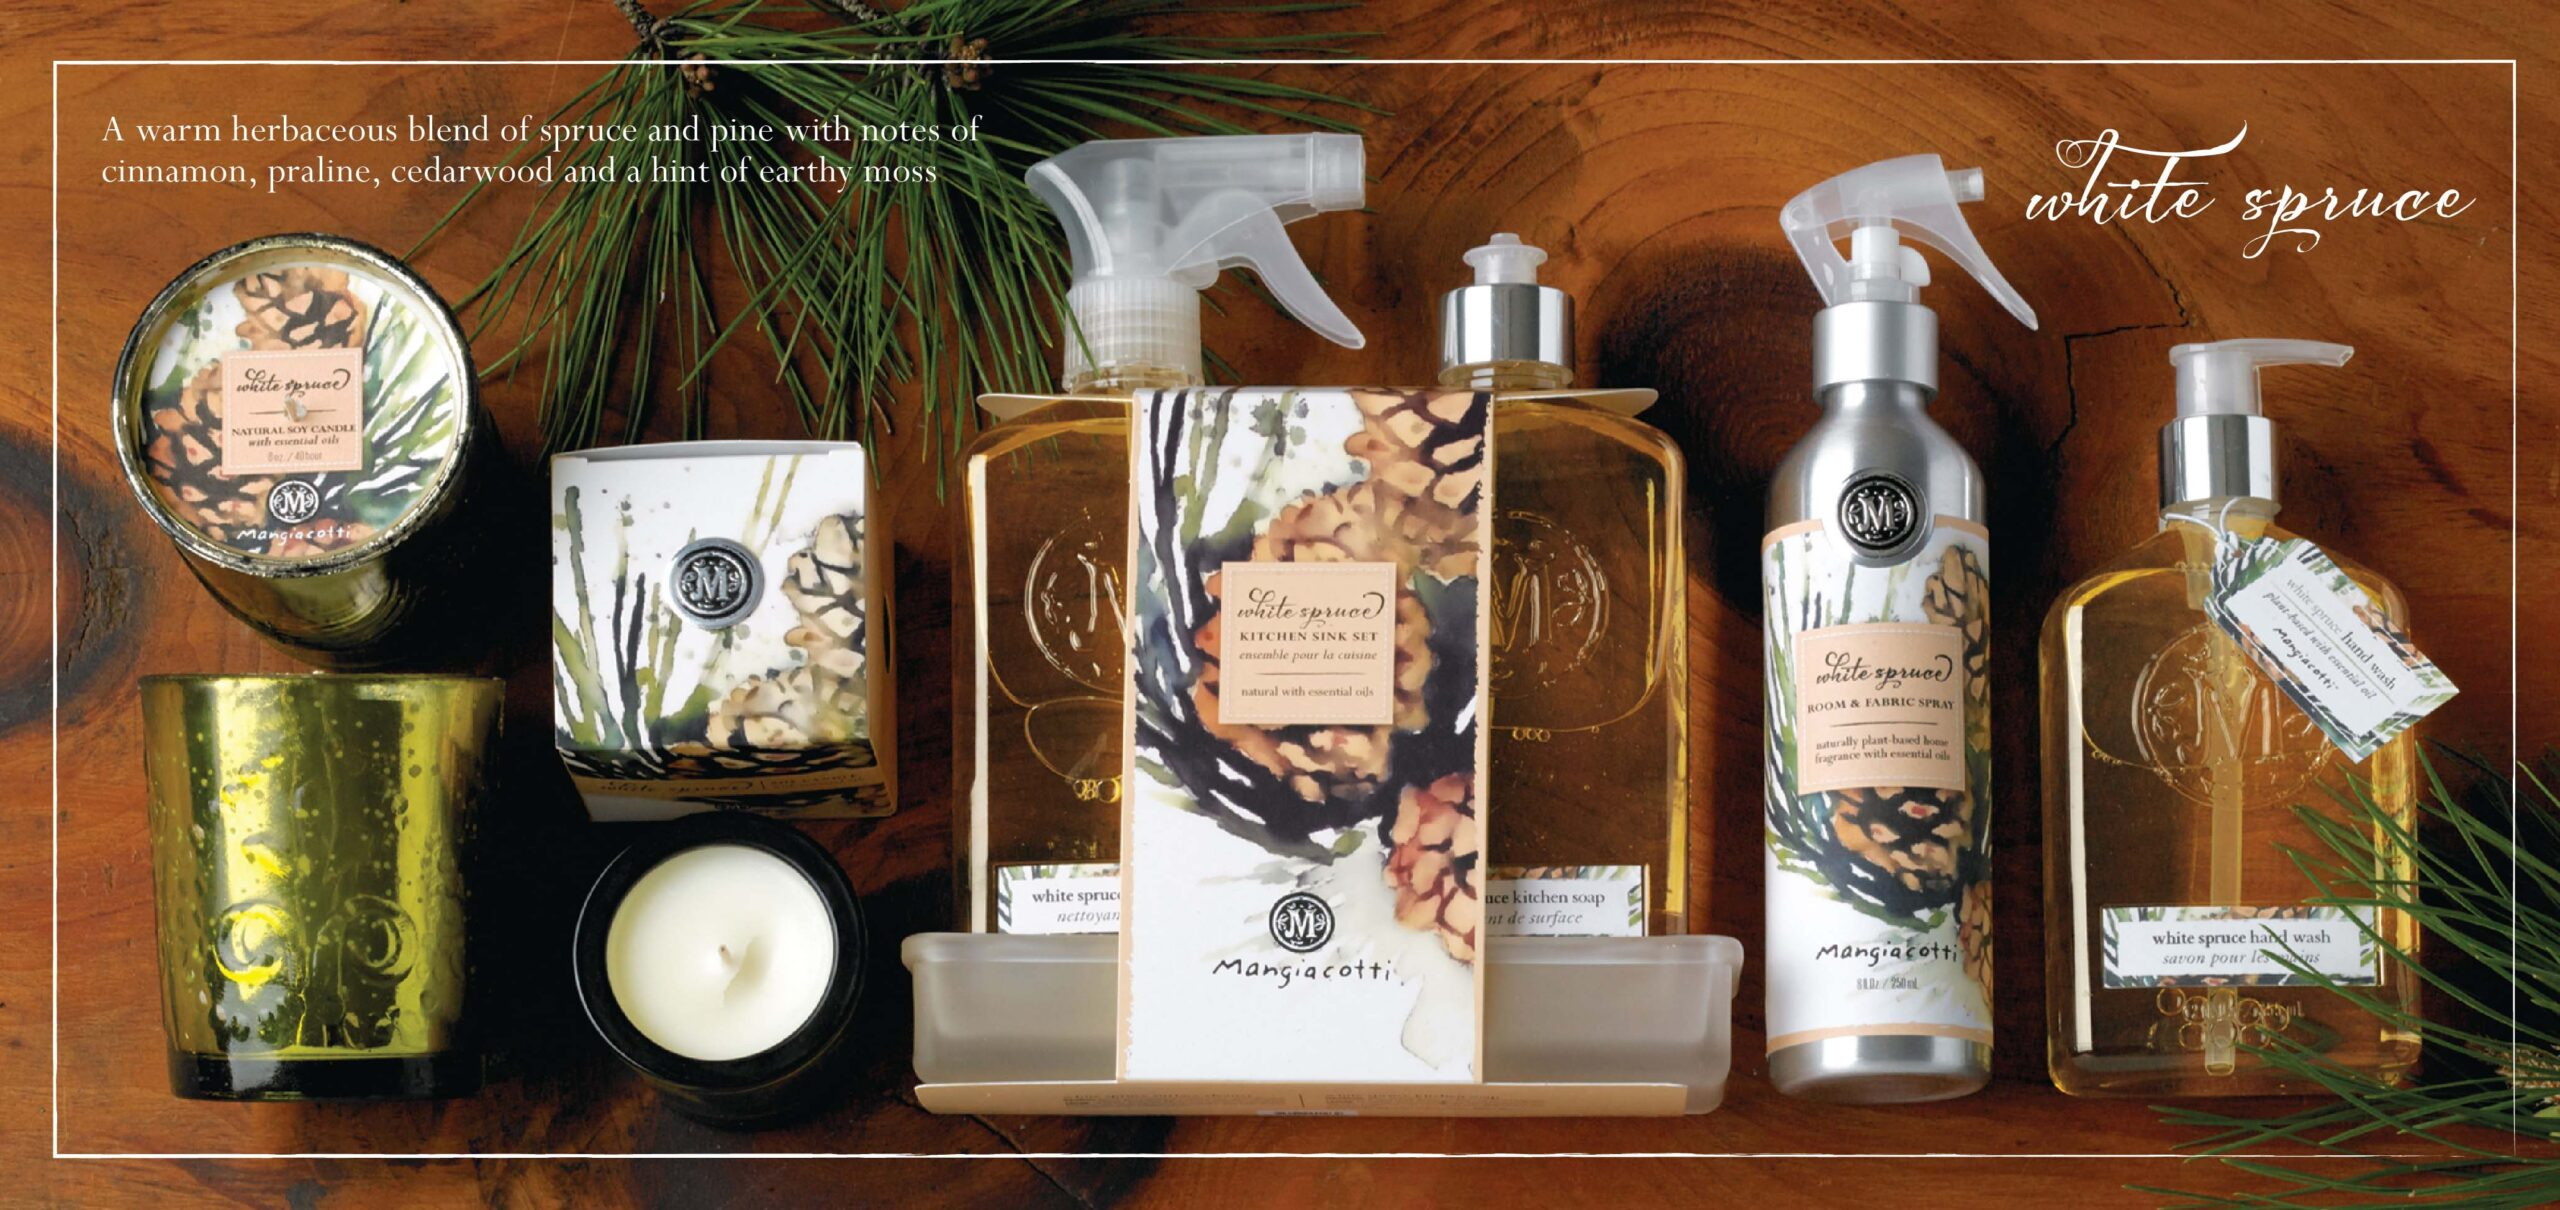 Mangiacotti White Spruce Collection